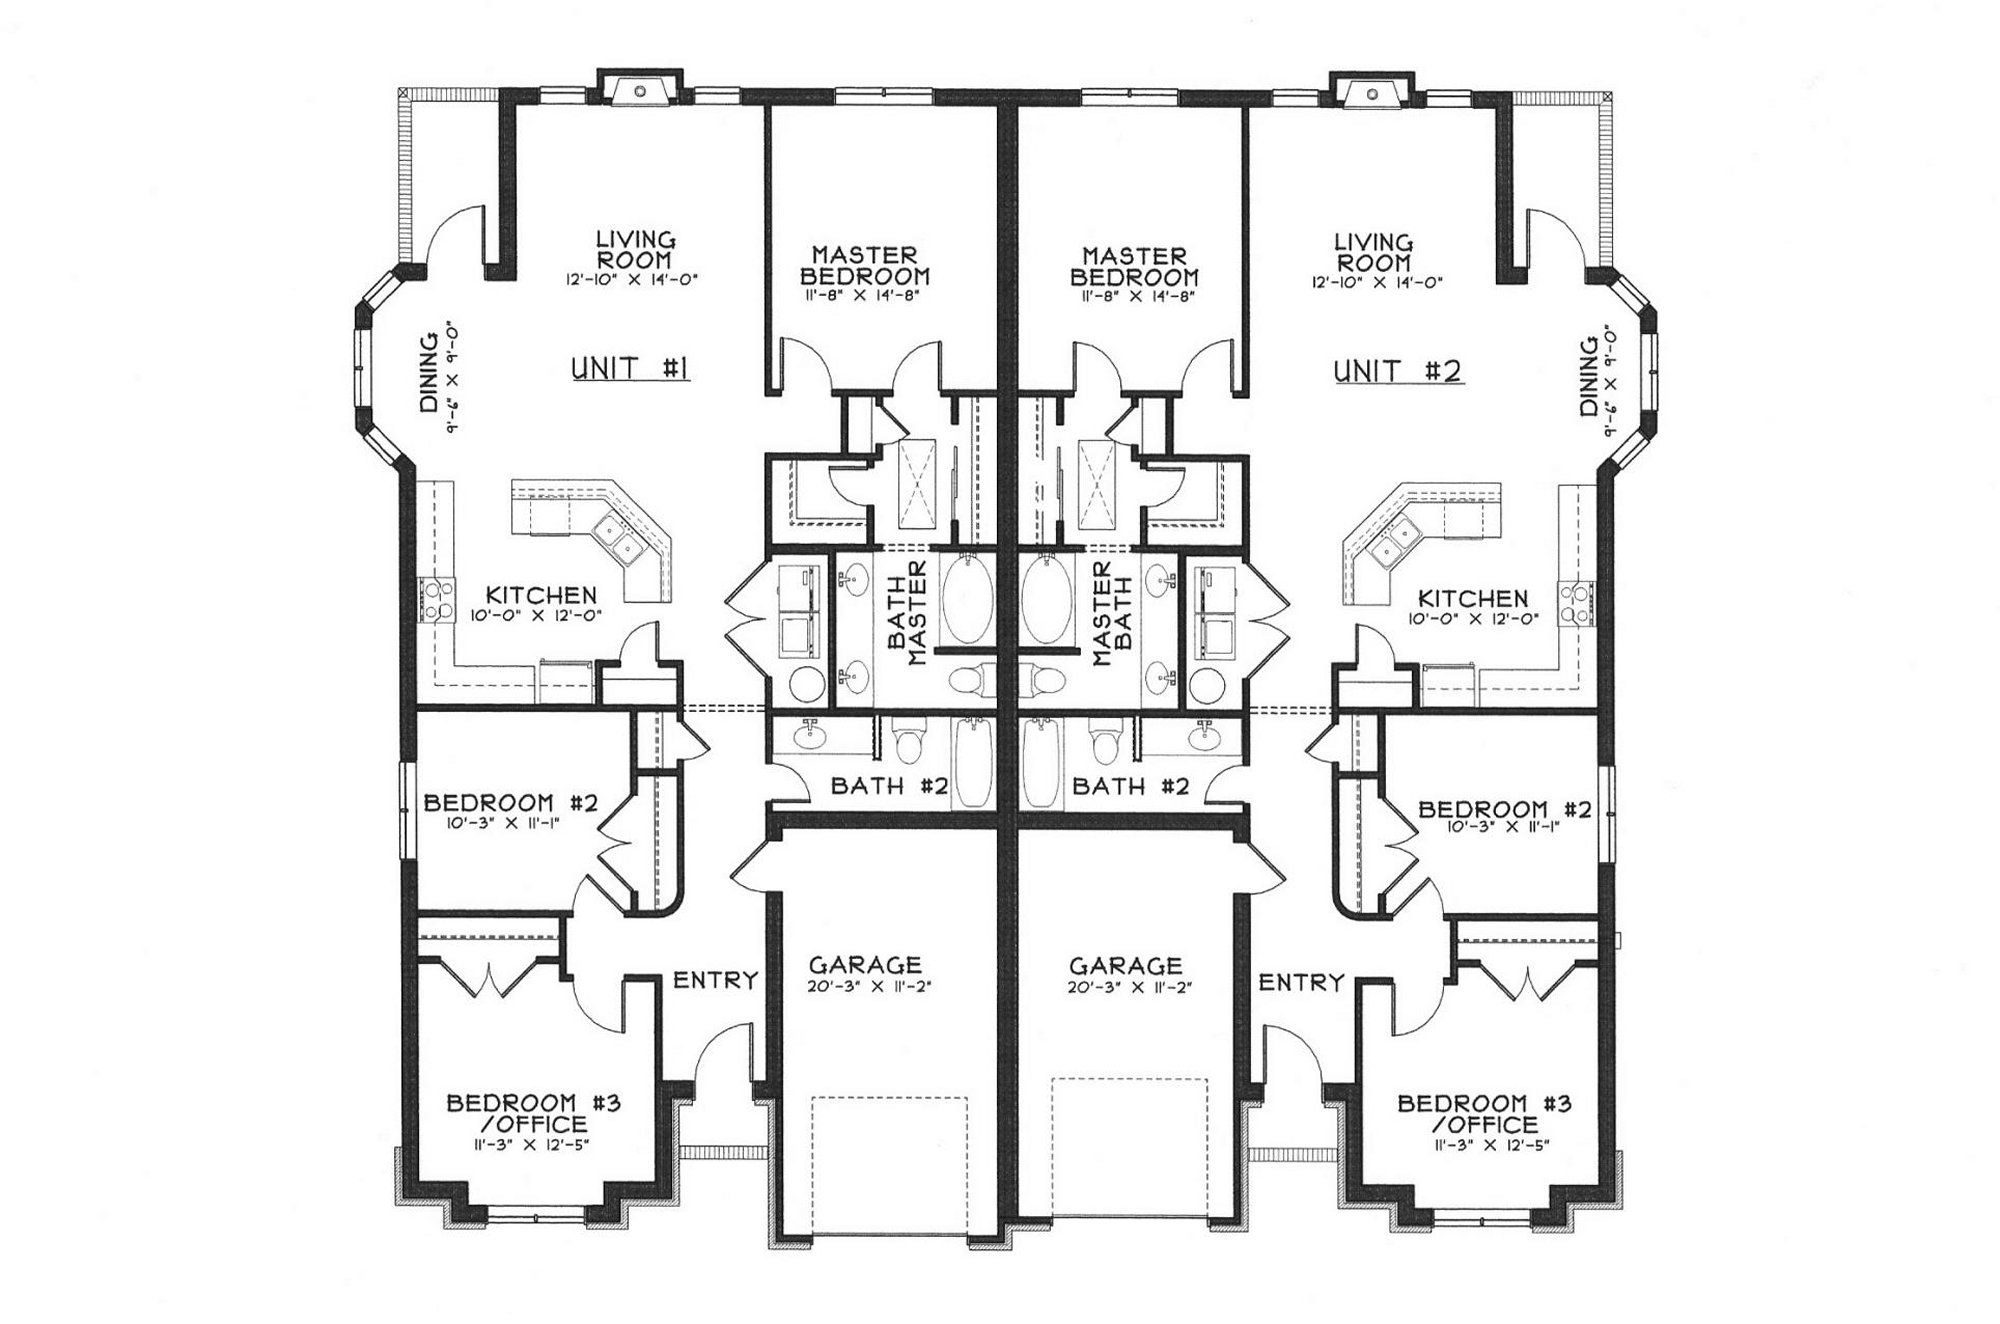 House blueprints for sale 3 floor plans and blueprints house blueprints for sale 3 malvernweather Images